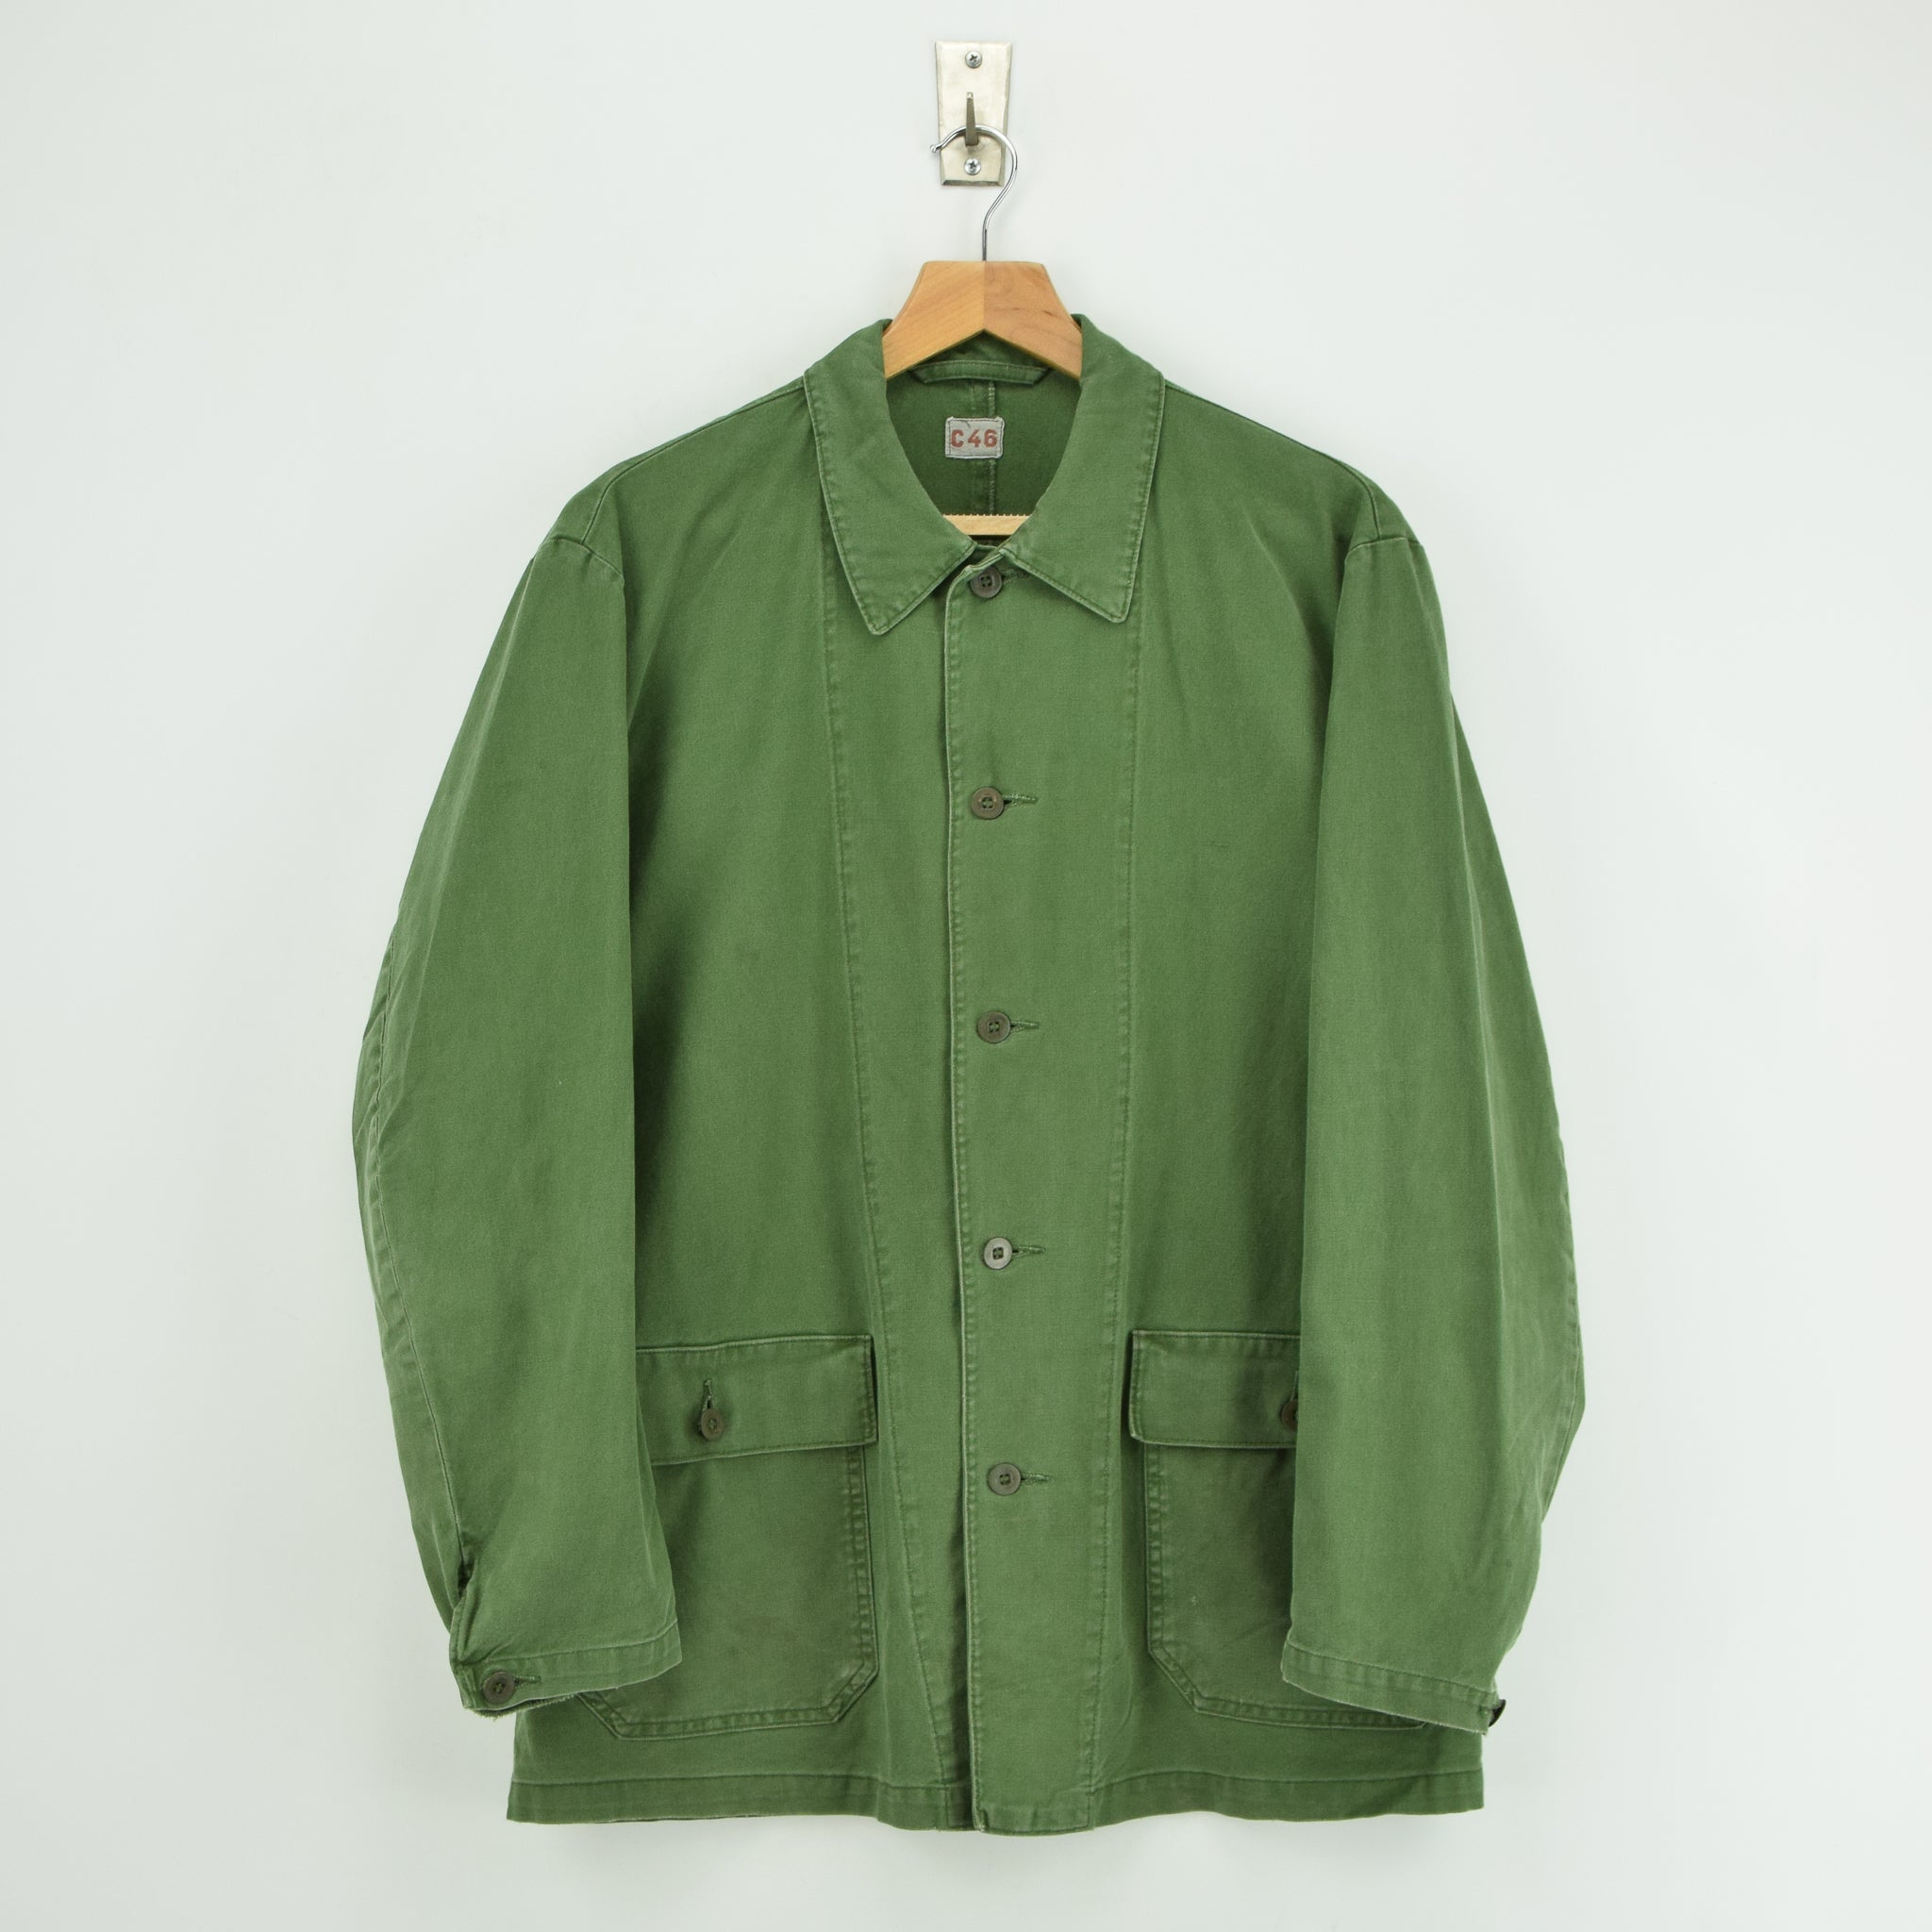 Vintage Swedish Worker Style Green Distressed Military Cotton Field Jacket M front